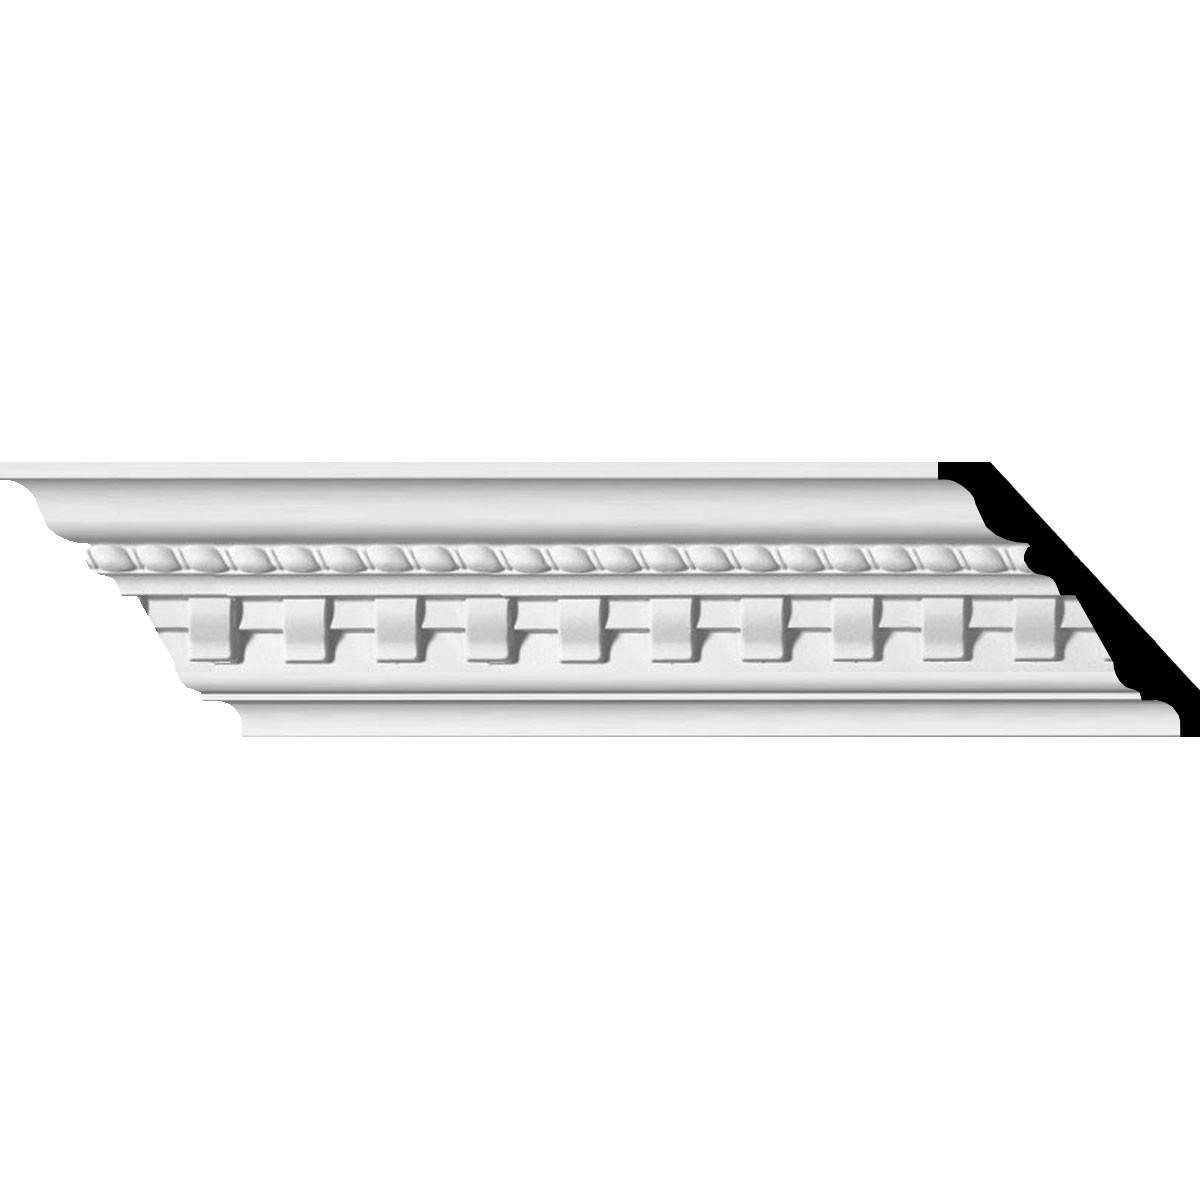 """EM-MLD04X04X05BU - 3 1/2""""H x 3 7/8""""P x 5 1/8""""F x 95 5/8""""L, (1 3/8"""" Repeat), Bulwark Dentil and Rope Crown Moulding"""